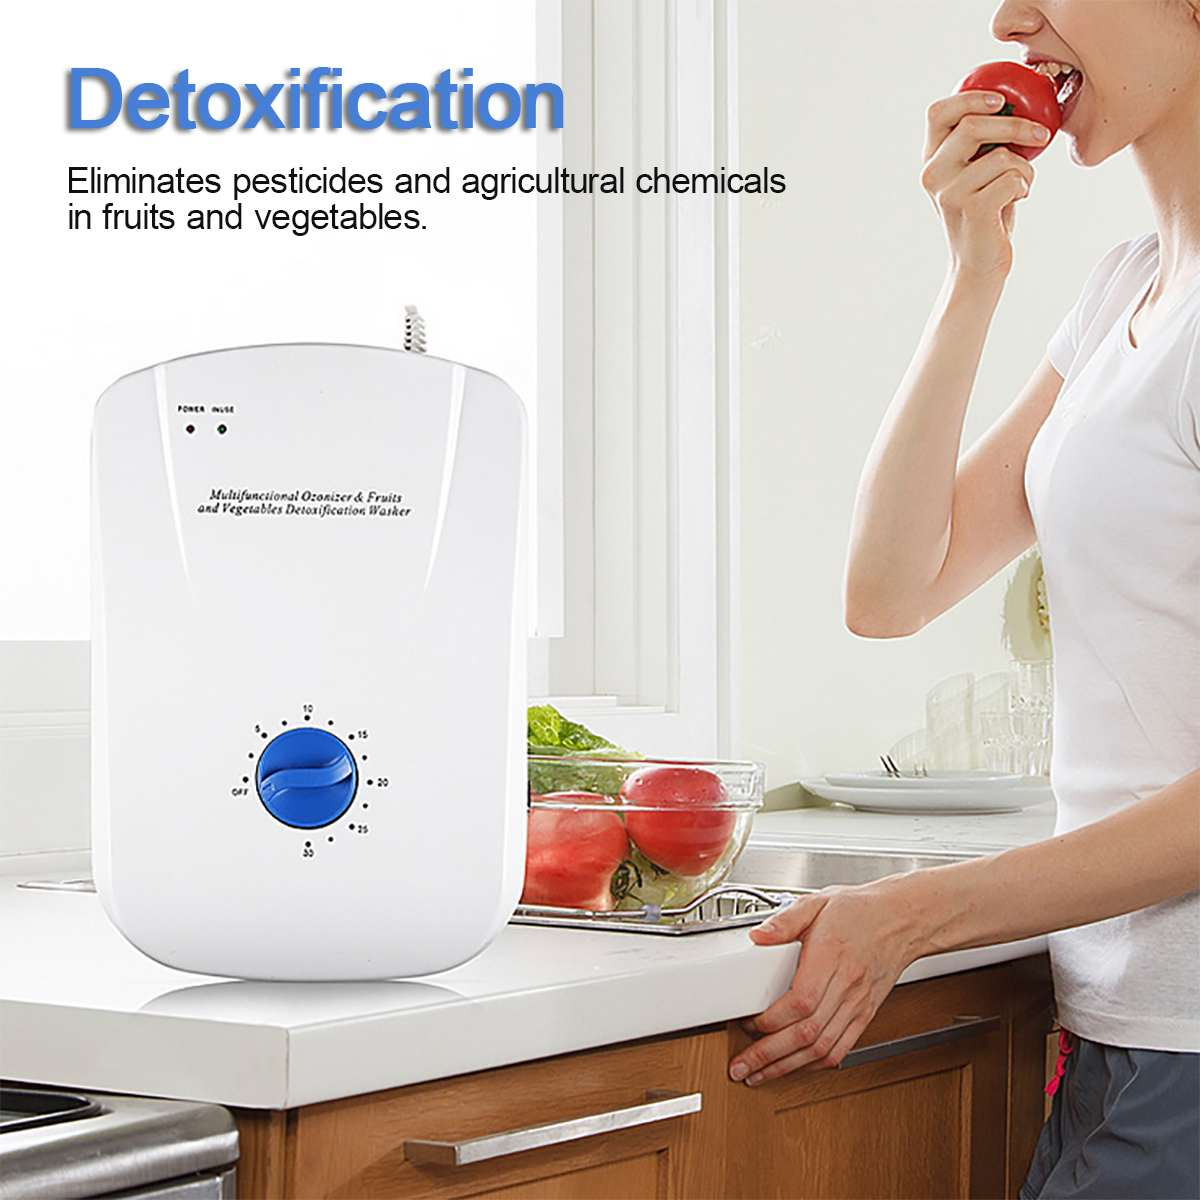 400mg/h Portable <font><b>Ozone</b></font> <font><b>Generator</b></font> Ozonator ionizer Home sterilizer Timer Air Purifiers Oil Vegetable Meat Fresh Purify <font><b>Water</b></font> image